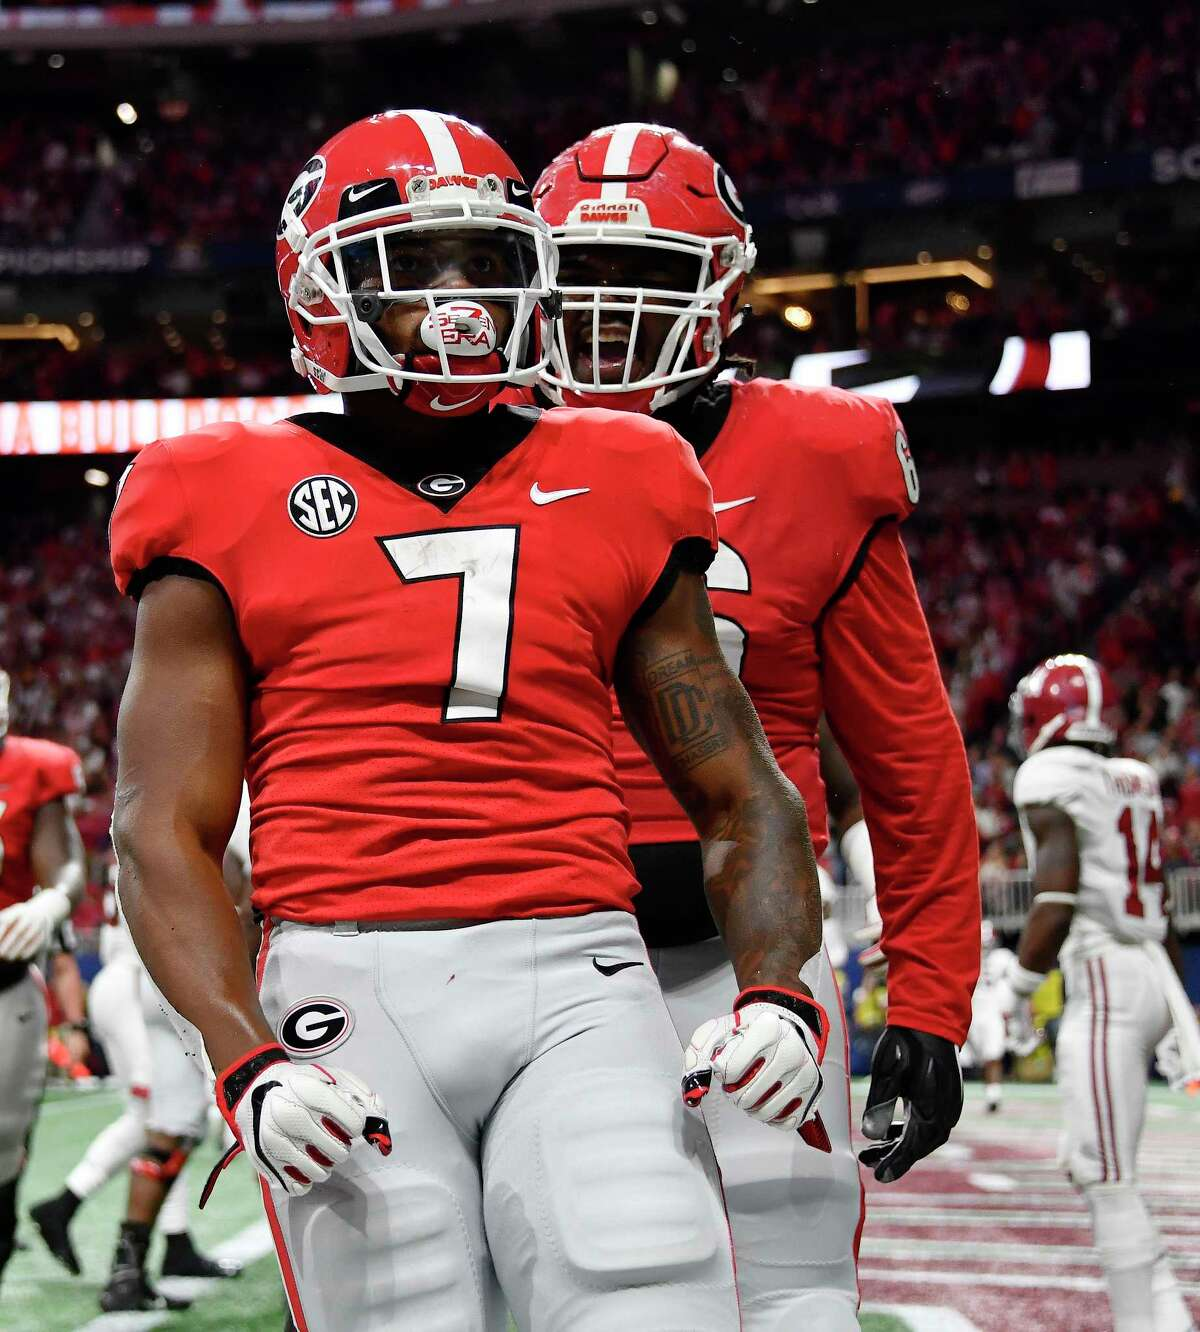 Georgia running back D'Andre Swift (7) celebrates his touchdown against Alabama during the first half of the Southeastern Conference championship NCAA college football game, Saturday, Dec. 1, 2018, in Atlanta.